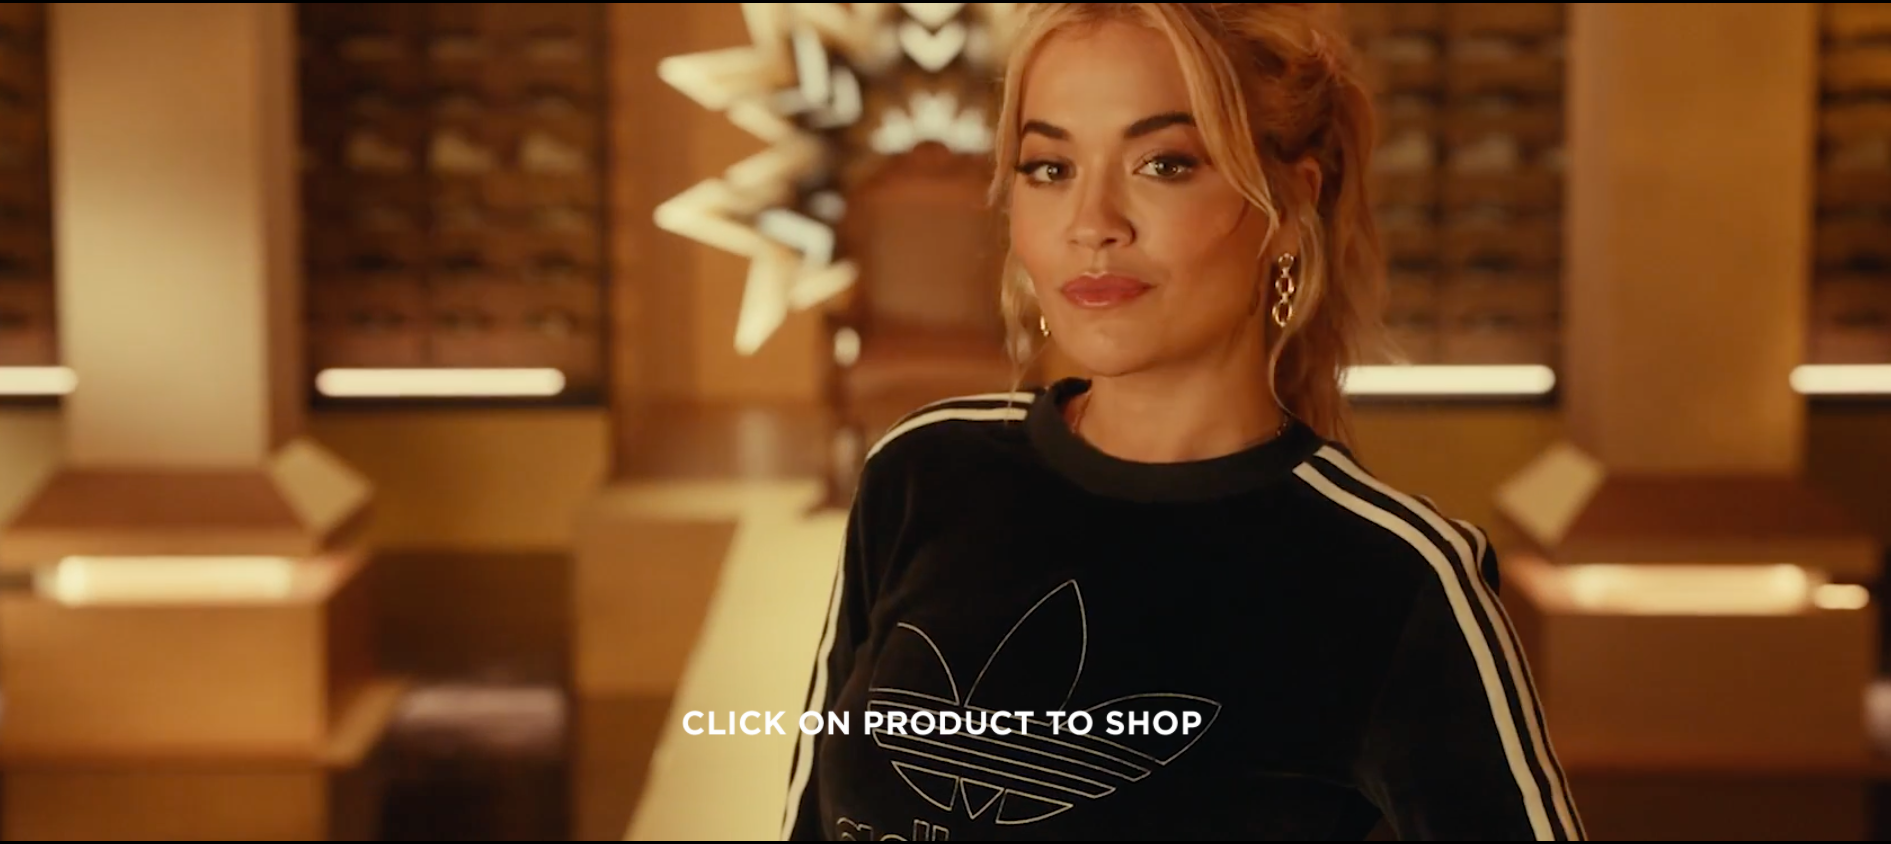 JD Sports Christmas Advert 2020 - credit to The Chase Films and Elizabeth Melinek